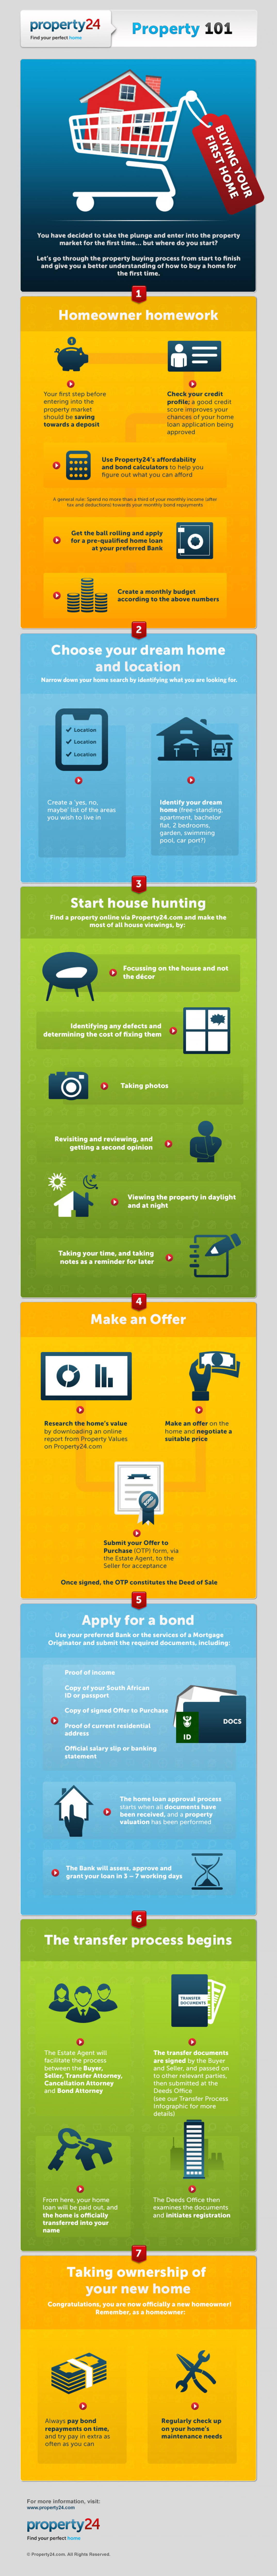 How to buy your first home Infographic